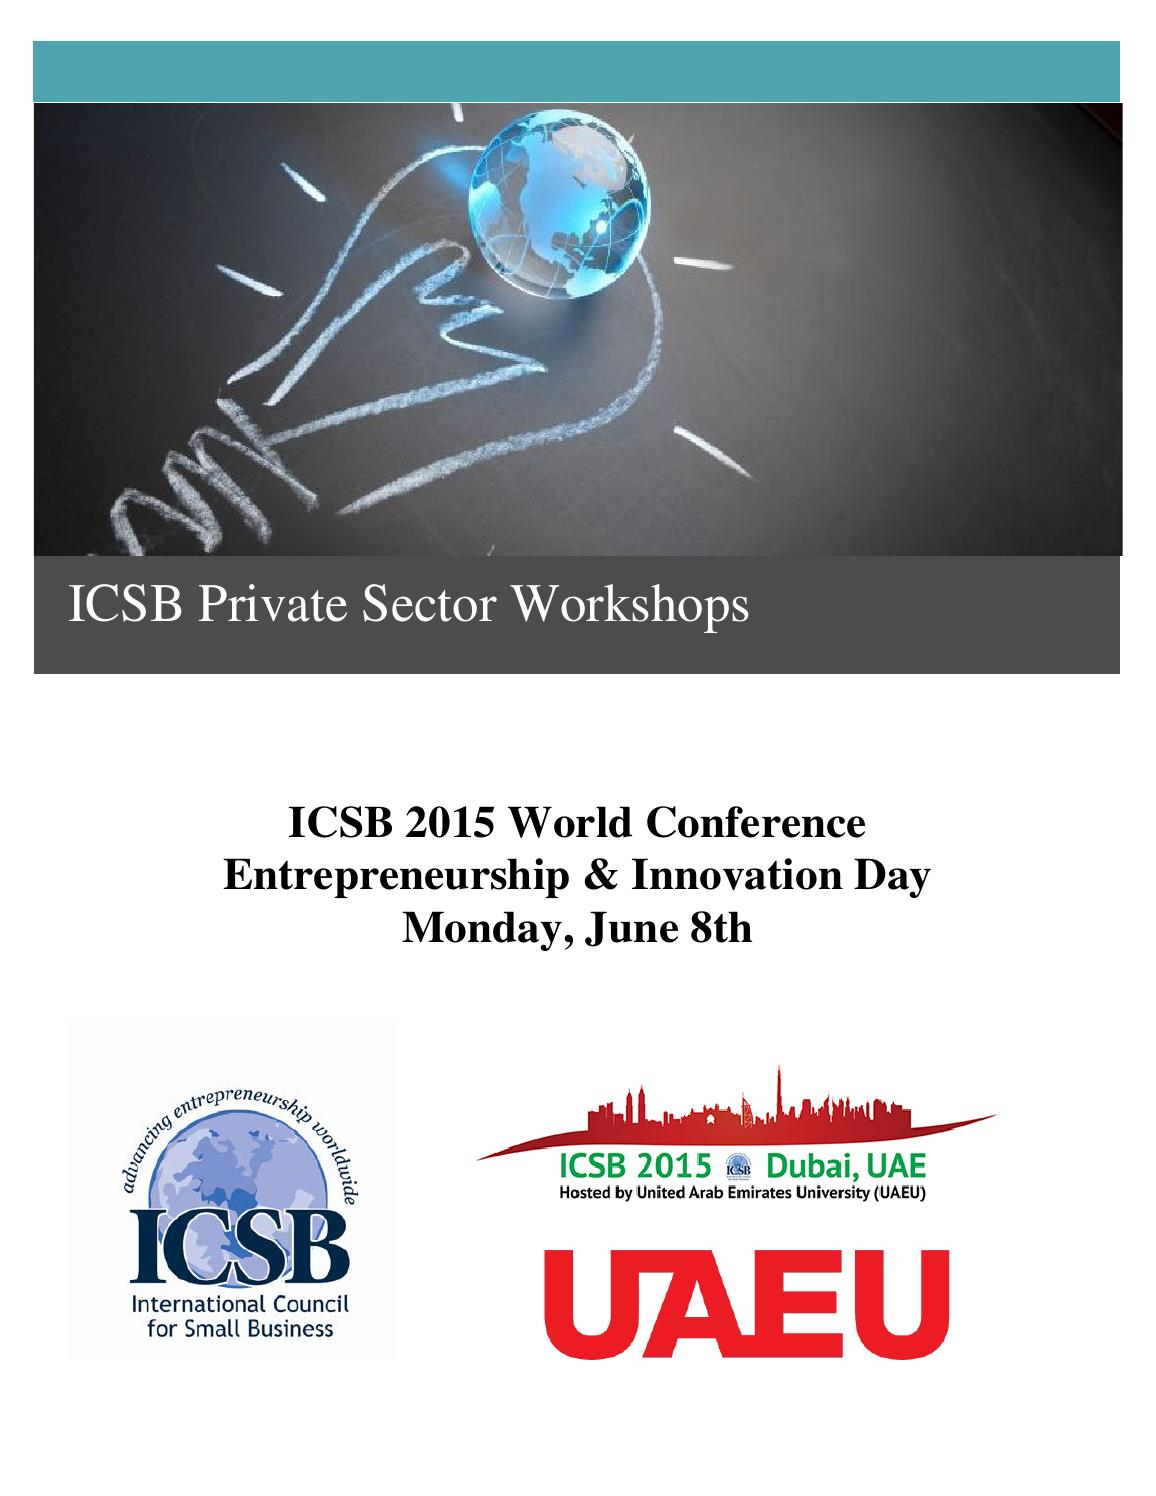 Icsb 2015 Private Sector Workshop Psw Program By Mjoudrey Issuu Electrical Engineering Plan Uaeu